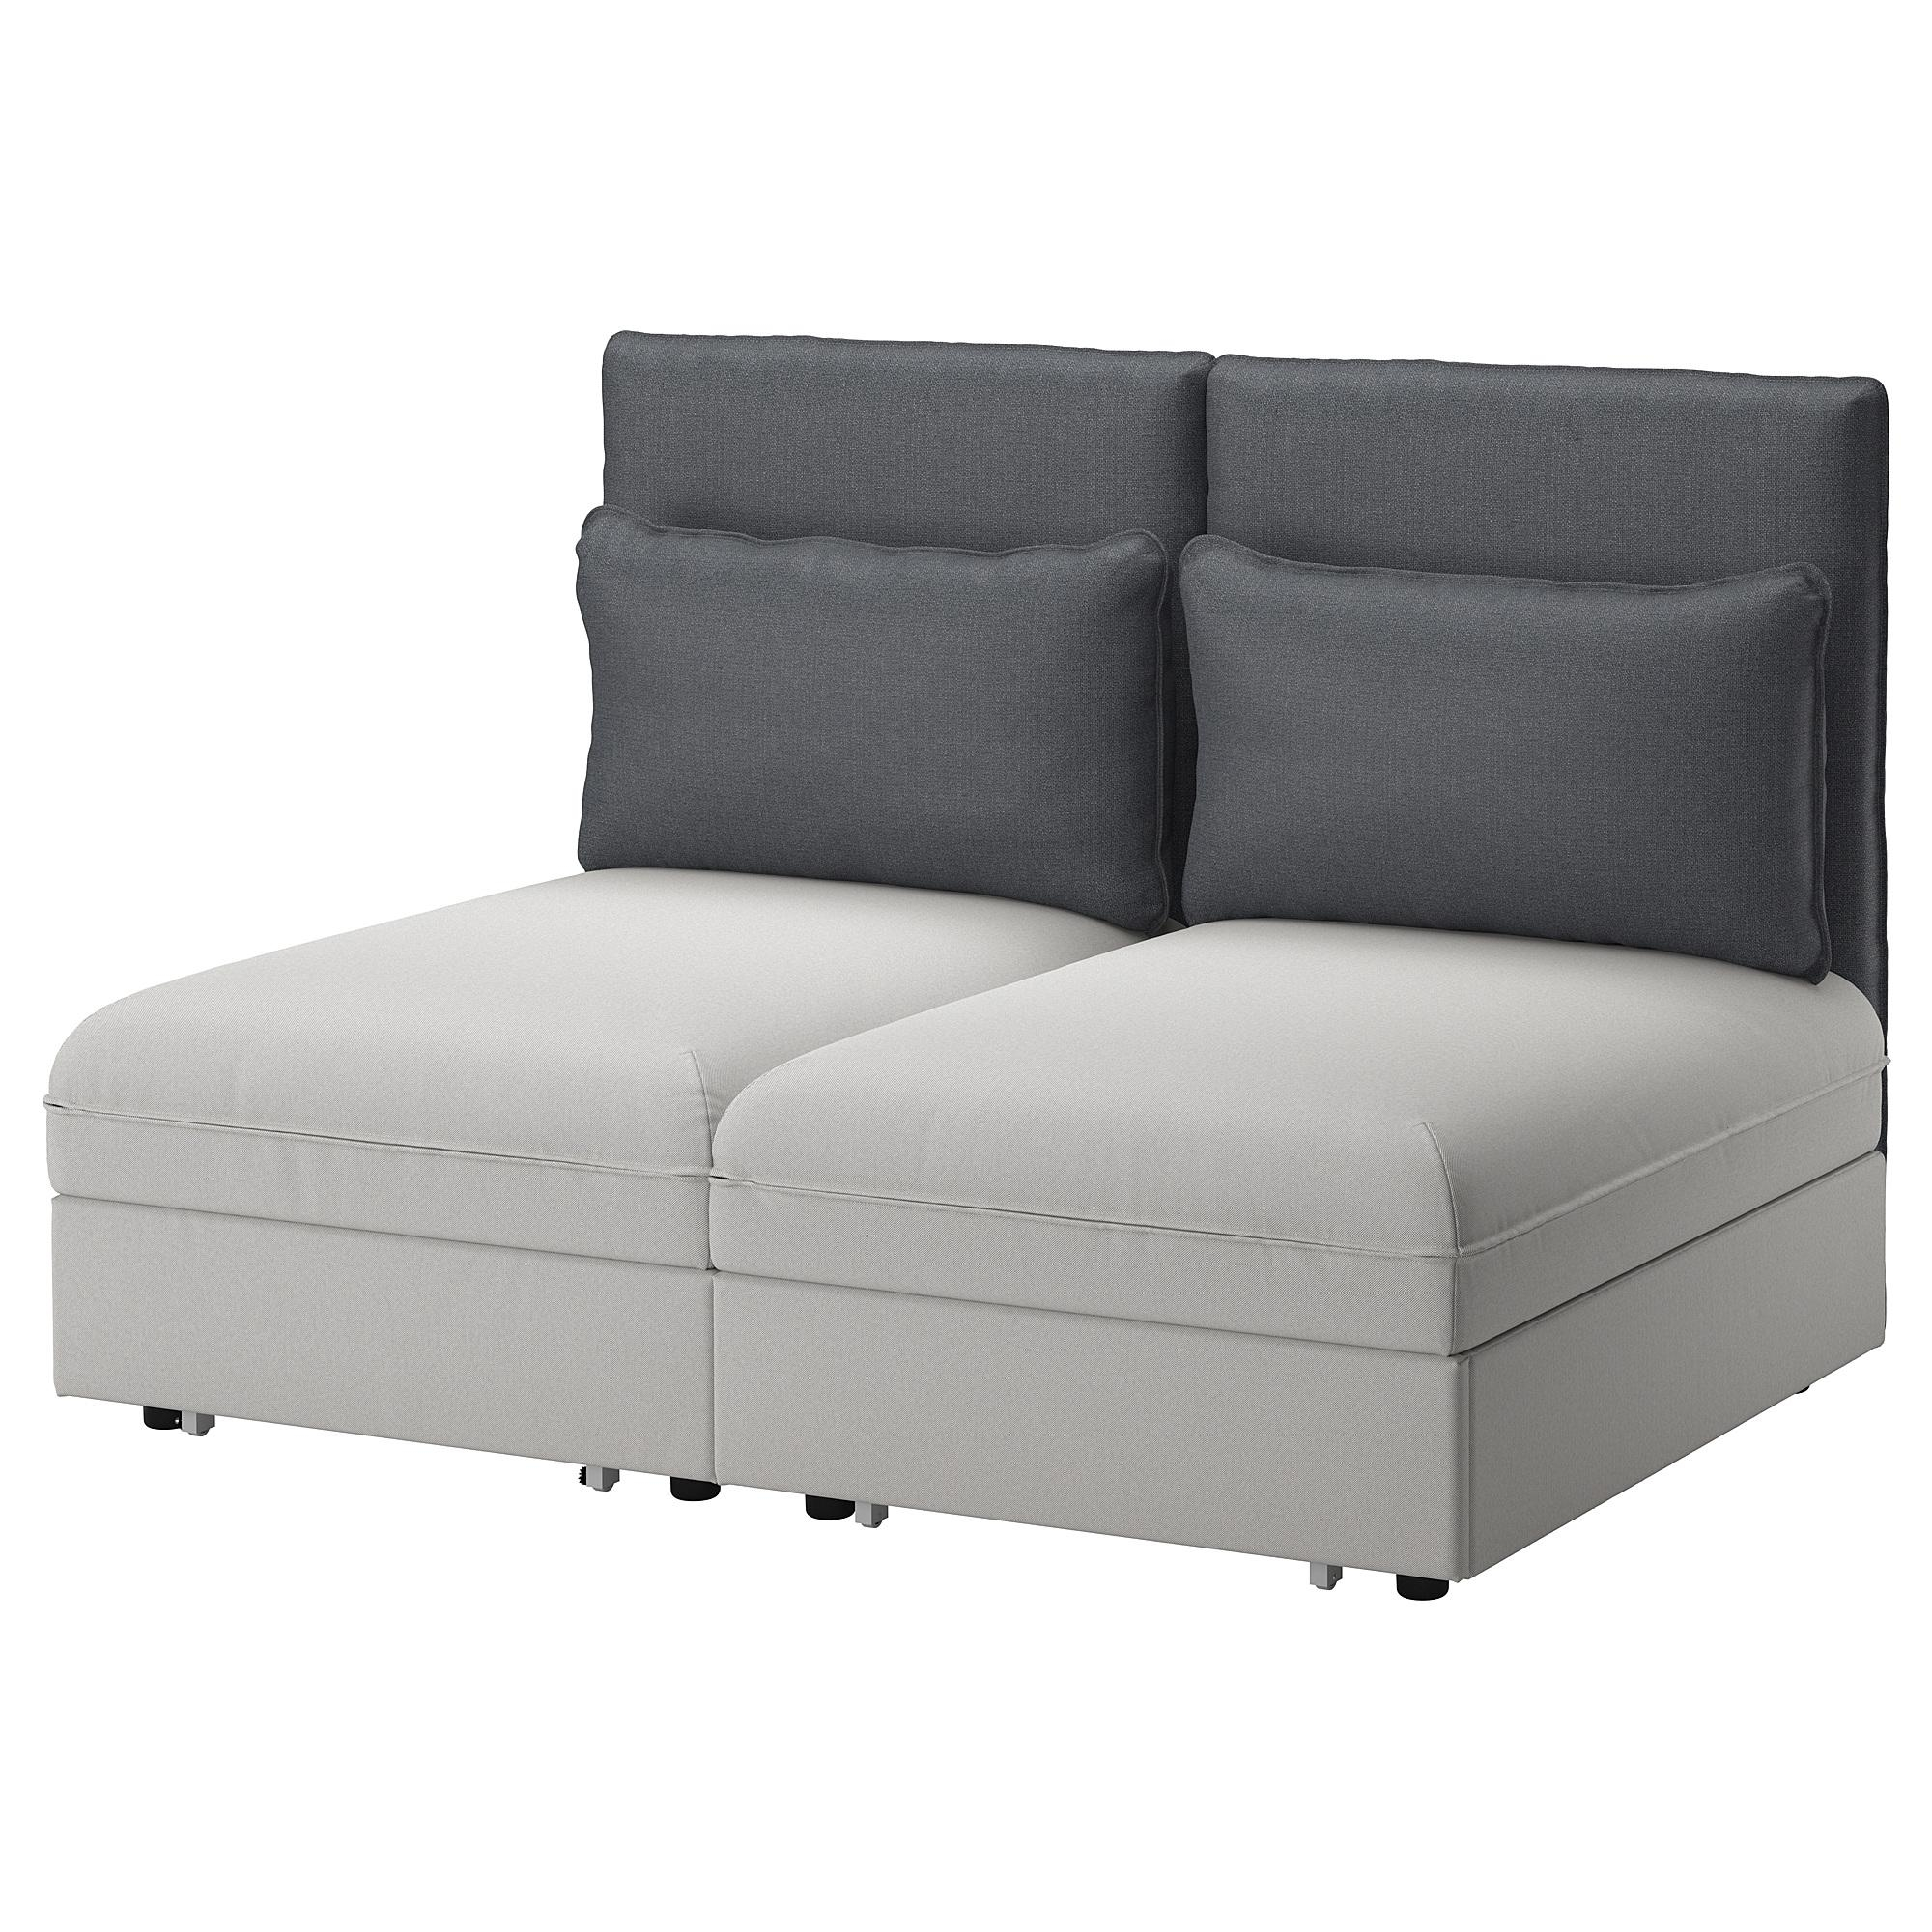 Sofa Beds & Futons – Ikea In Sectional Sofa Bed With Storage (View 15 of 20)